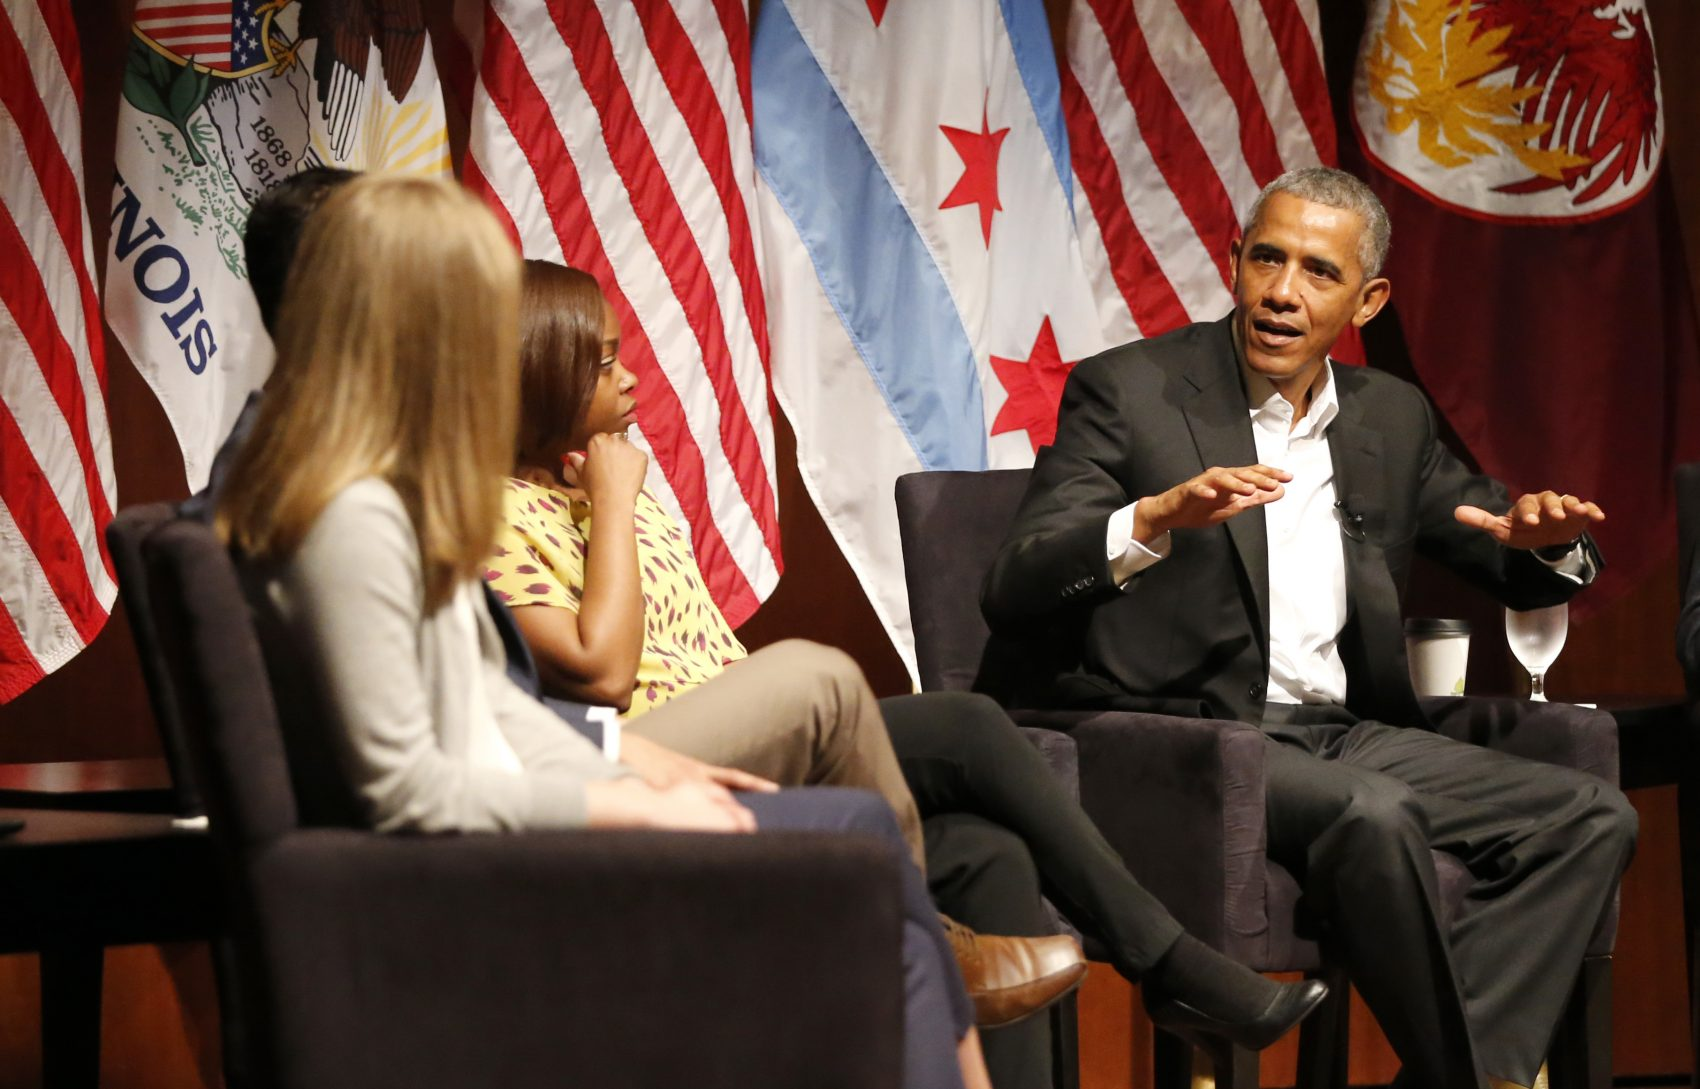 The former president has worsened the Democratic Party's public relations problem, writes Miles Howard. Pictured: Former President Barack Obama hosted a conversation on civic engagement and community organizing, Monday, April 24, 2017, at the University of Chicago. It's the former president's first public event of his post-presidential life in the place where he started his political career. (Charles Rex Arbogast/AP)